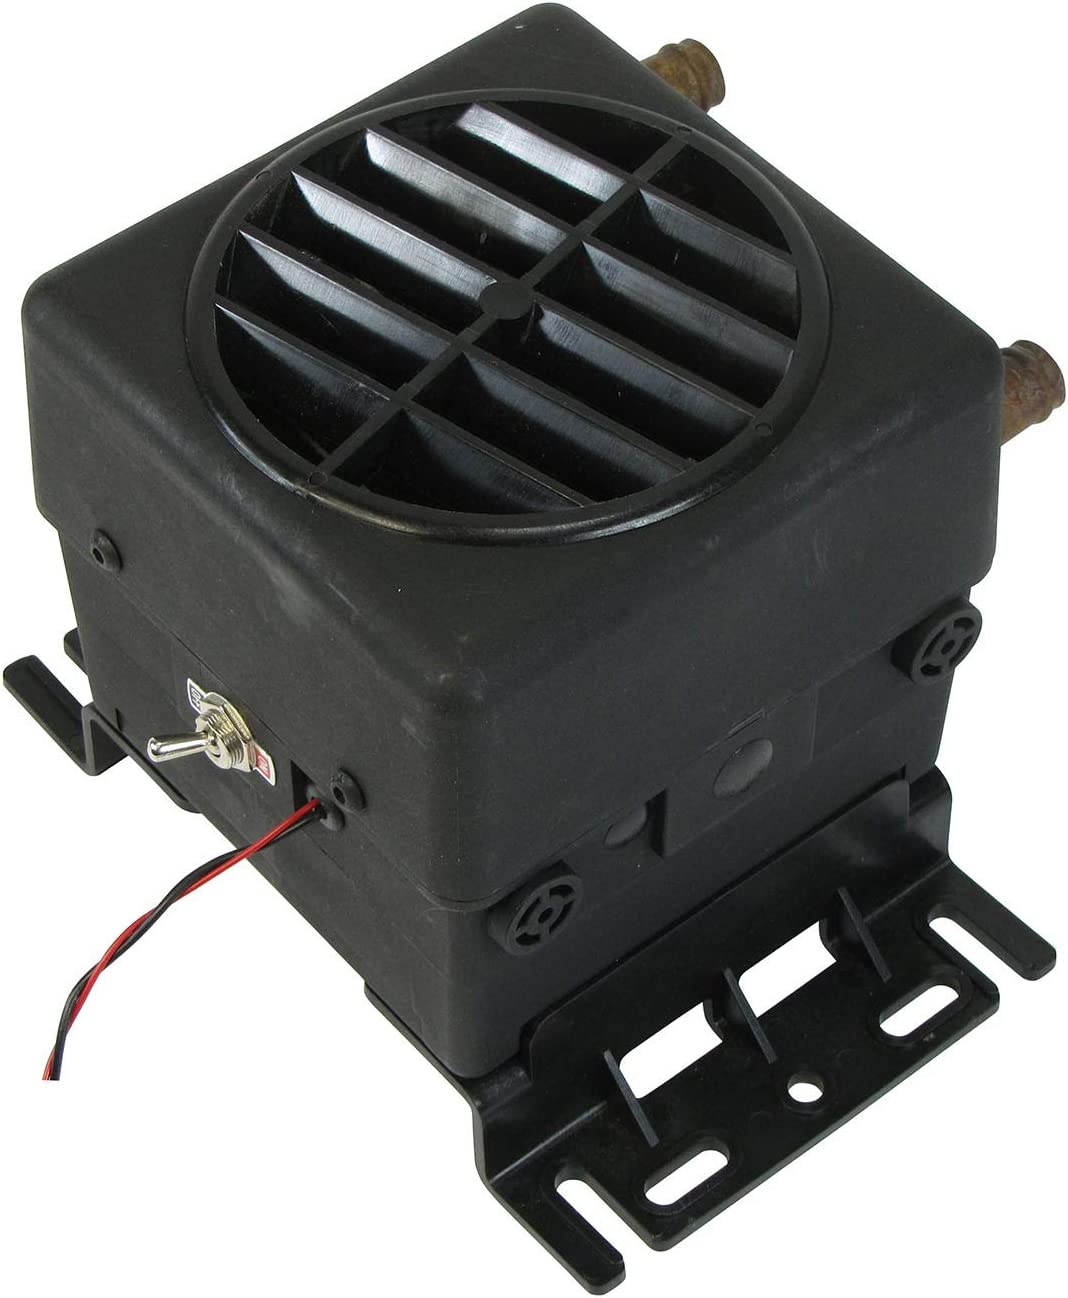 LIMITED QTY #IP-169H New Compact Auxiliary Heater SPECIAL PURCHASE